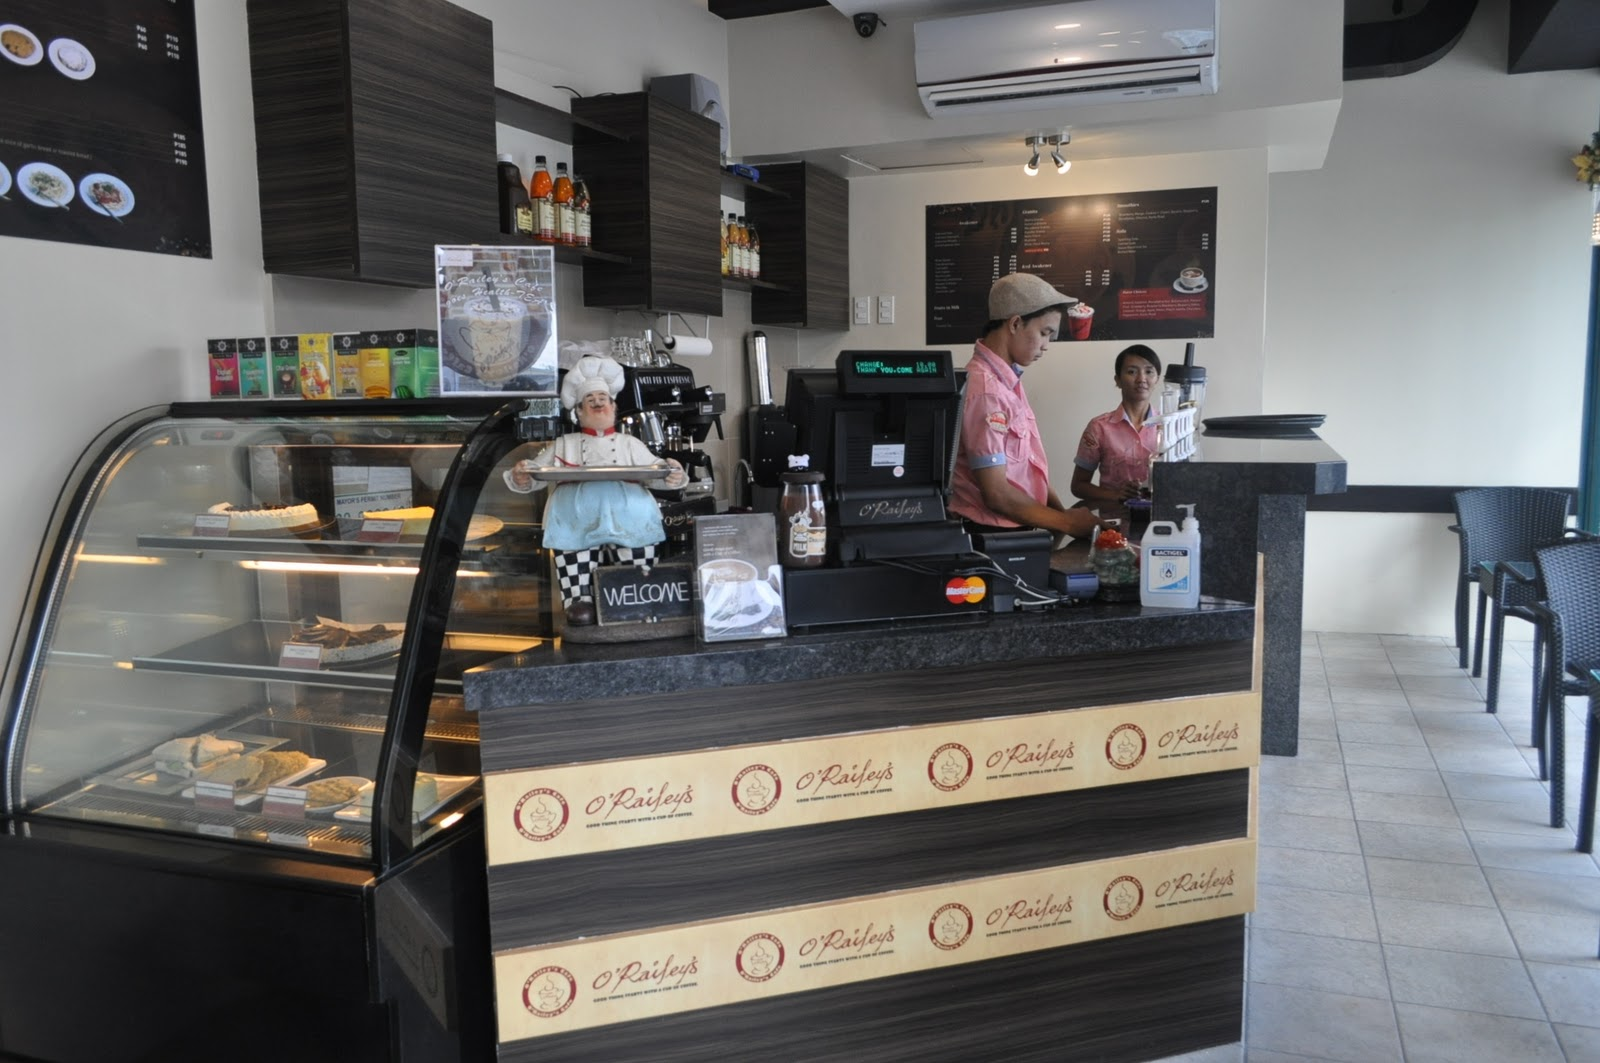 coffee shop industry in the philippines Coffee shops are a rising star in the specialty eatery industry, offering brewed coffee and specialty espresso drinks like cappuccinos and lattes success is driven by consumer taste and income level, as well as shop location and atmosphere.